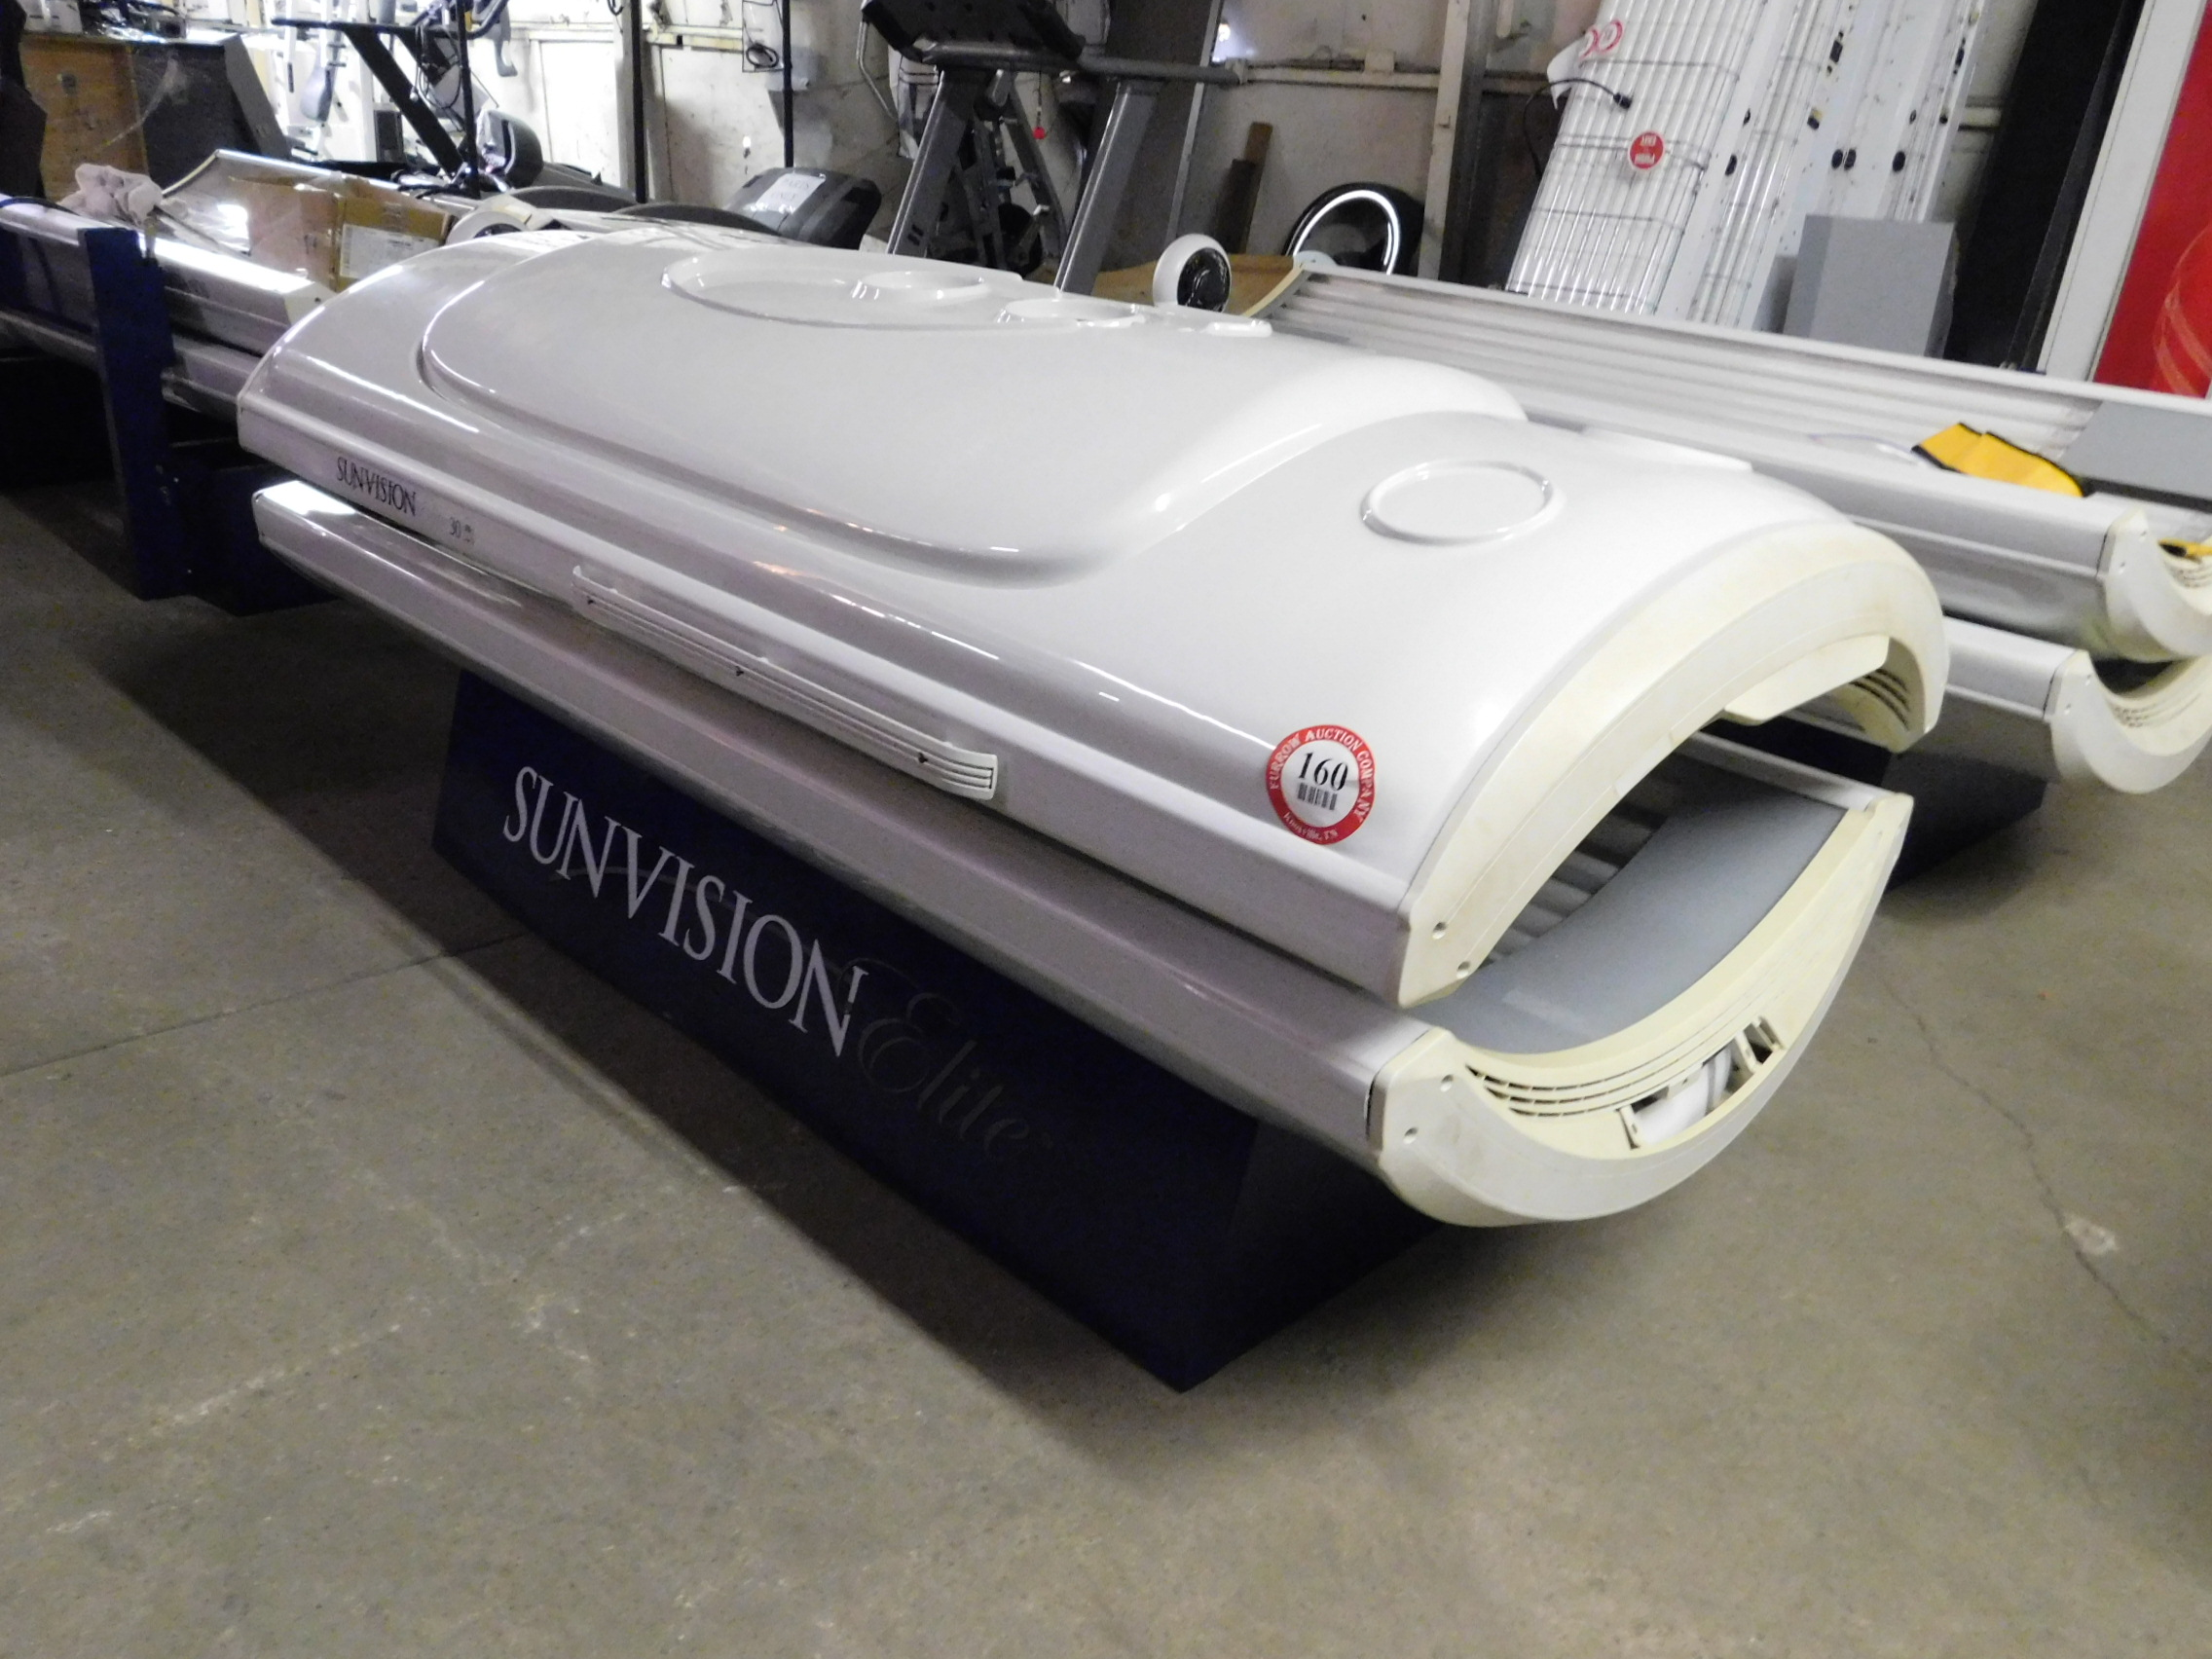 sunvision pro 28le tanning bed manual